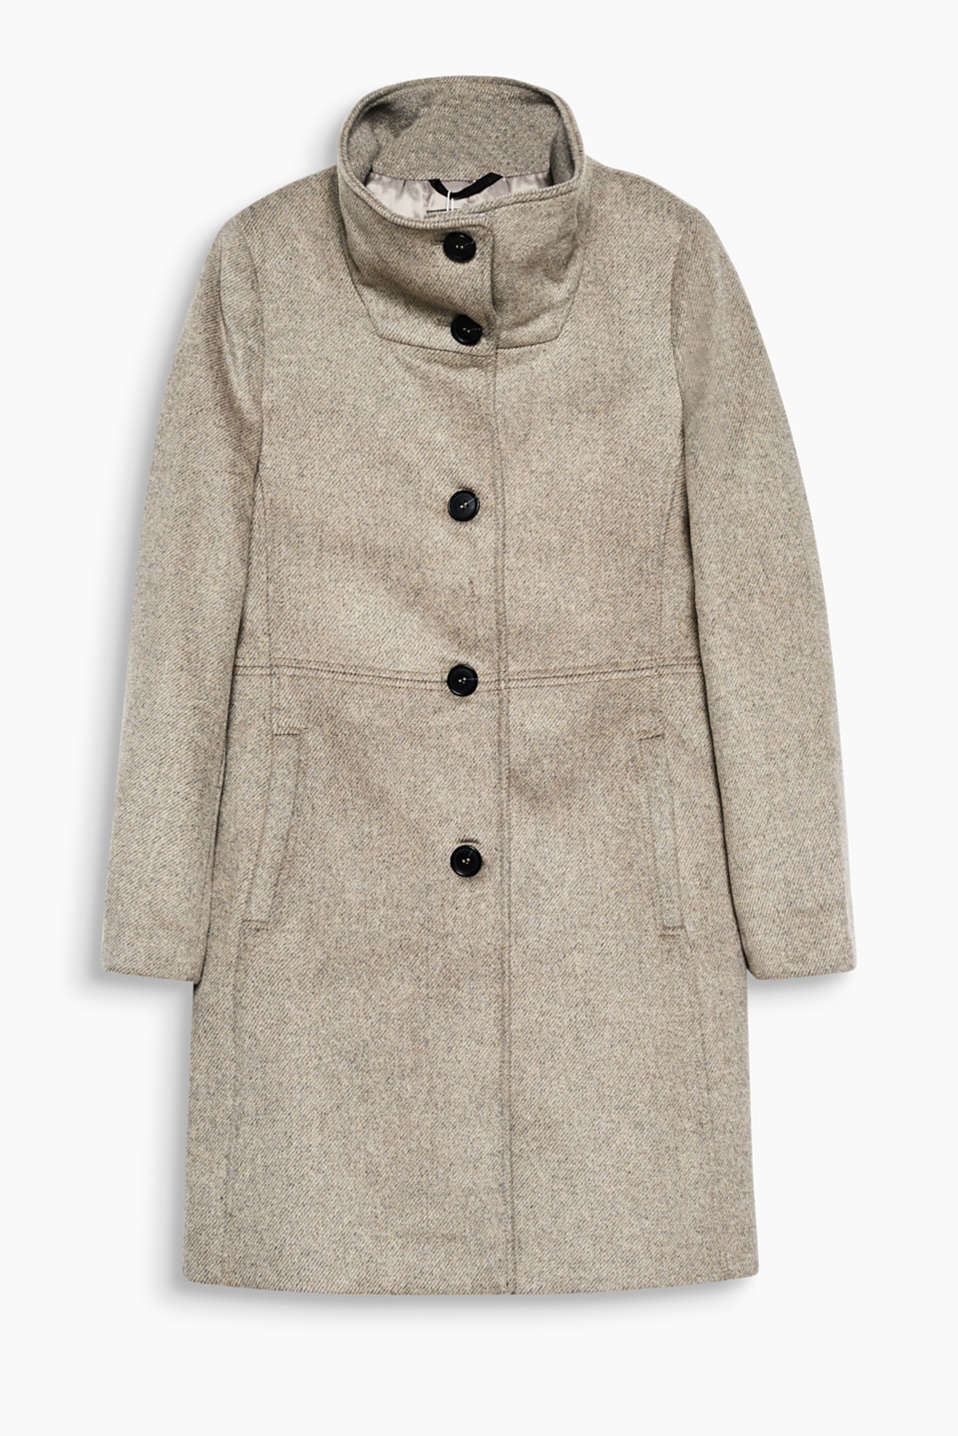 An exquisite companion for mild winter days: fitted coat in melange blended wool